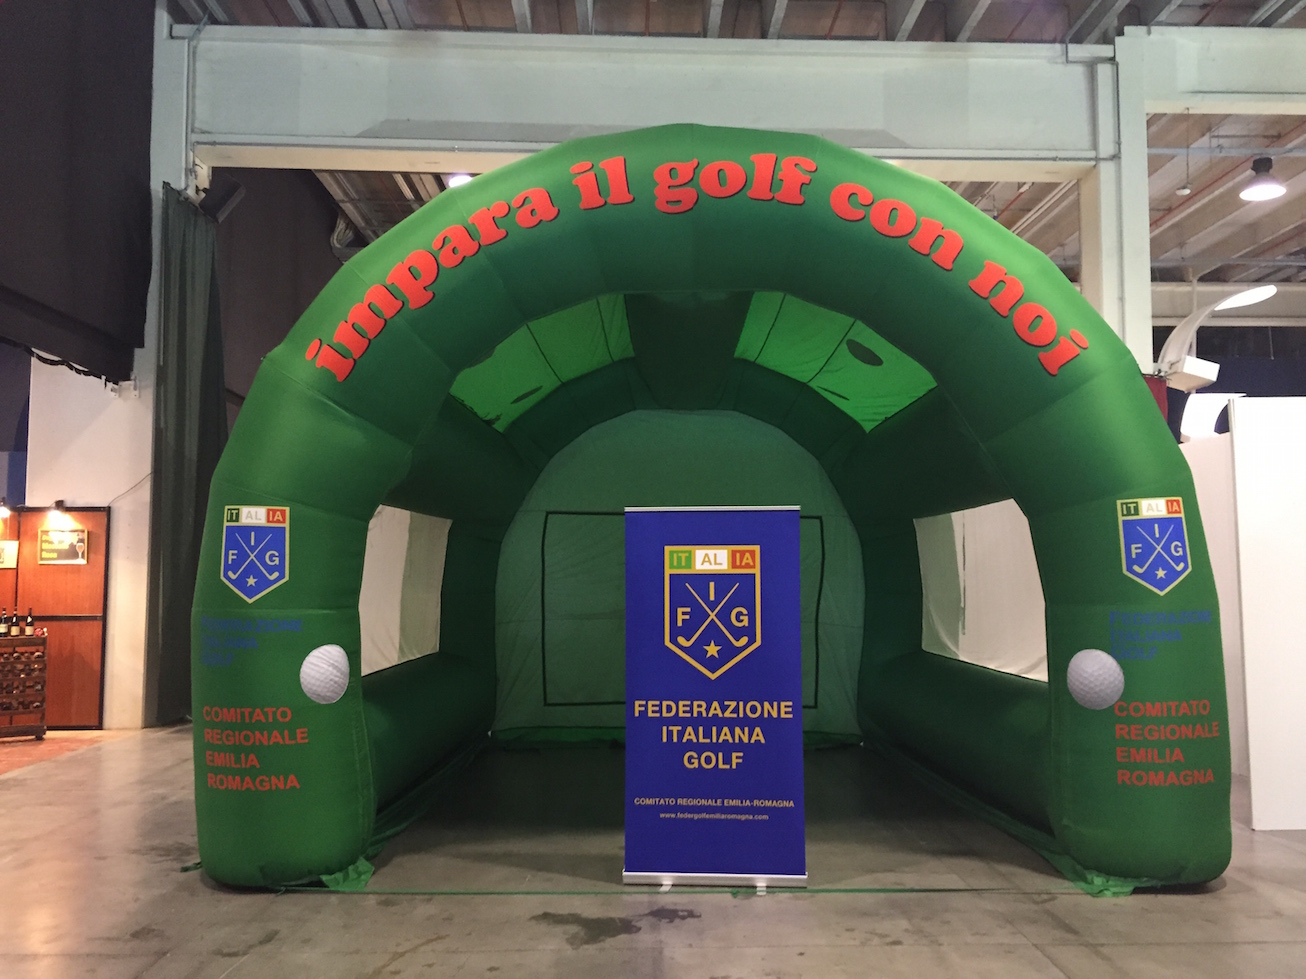 Fiera del Golf Parma 2015 le foto ed i video di Italian Golf Show e le prove dei materiali03 - Fiera del Golf Parma: le foto ed i video di Italian Golf Show